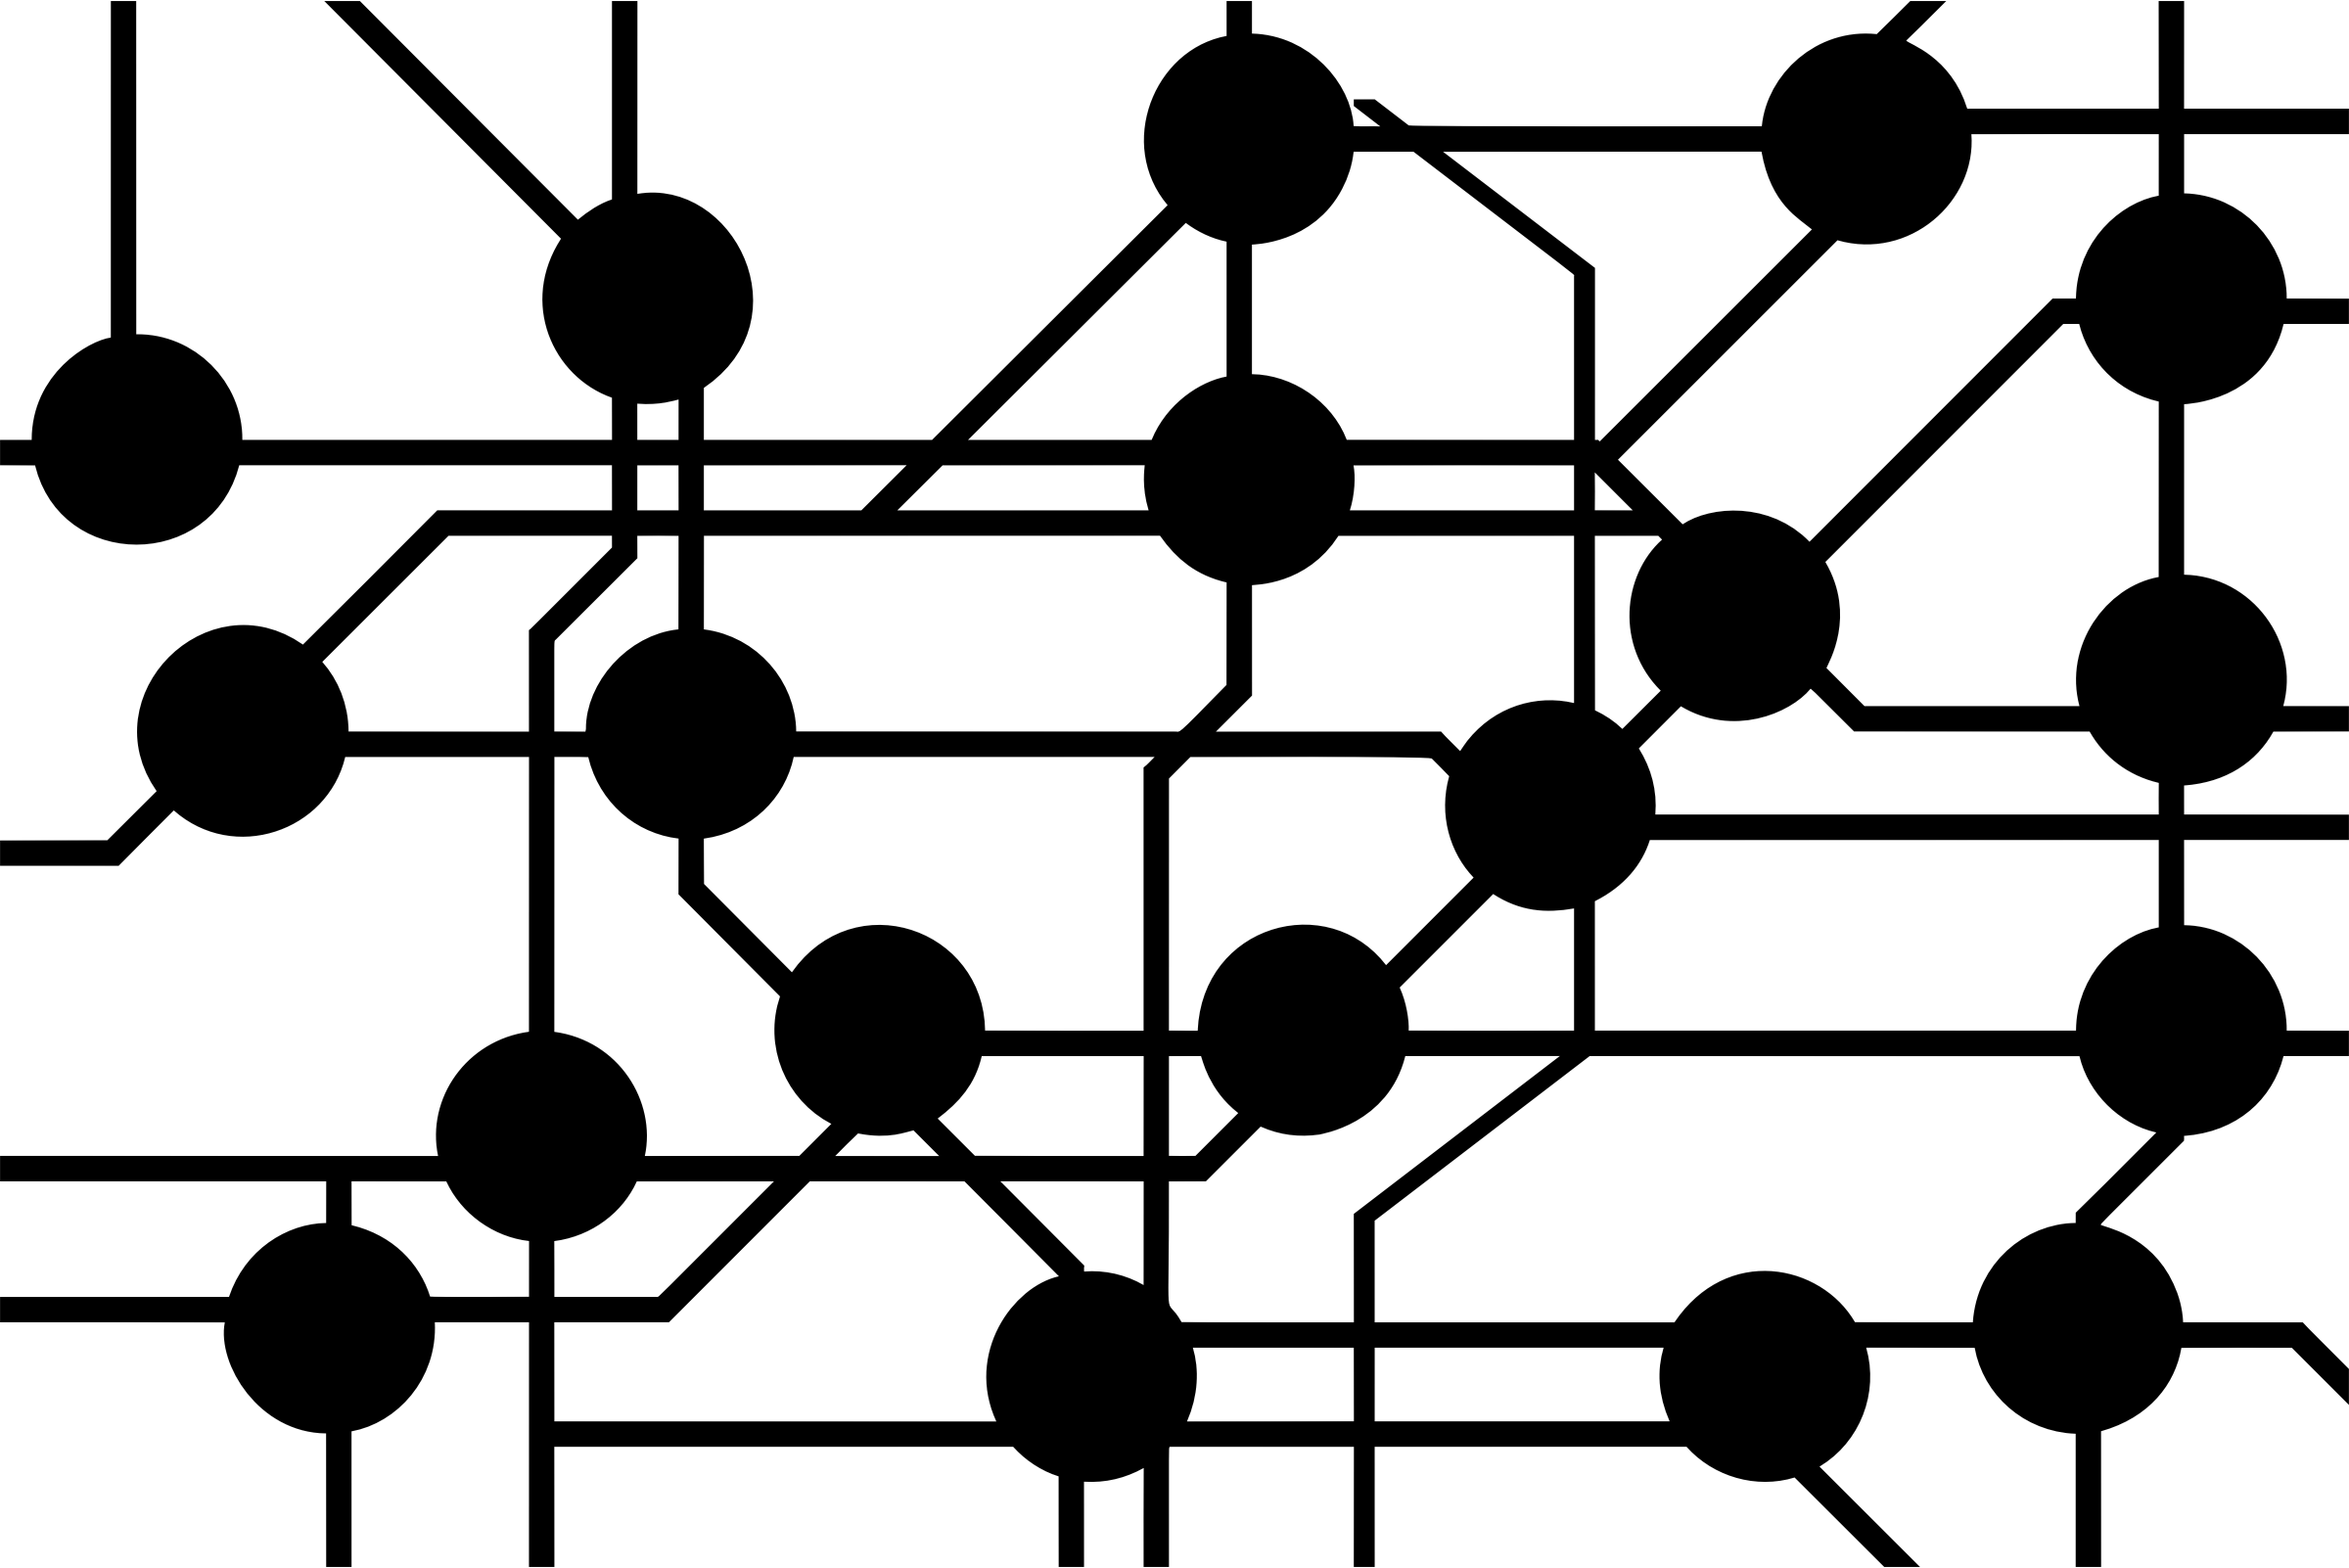 Network clipart black and white, Network black and white.